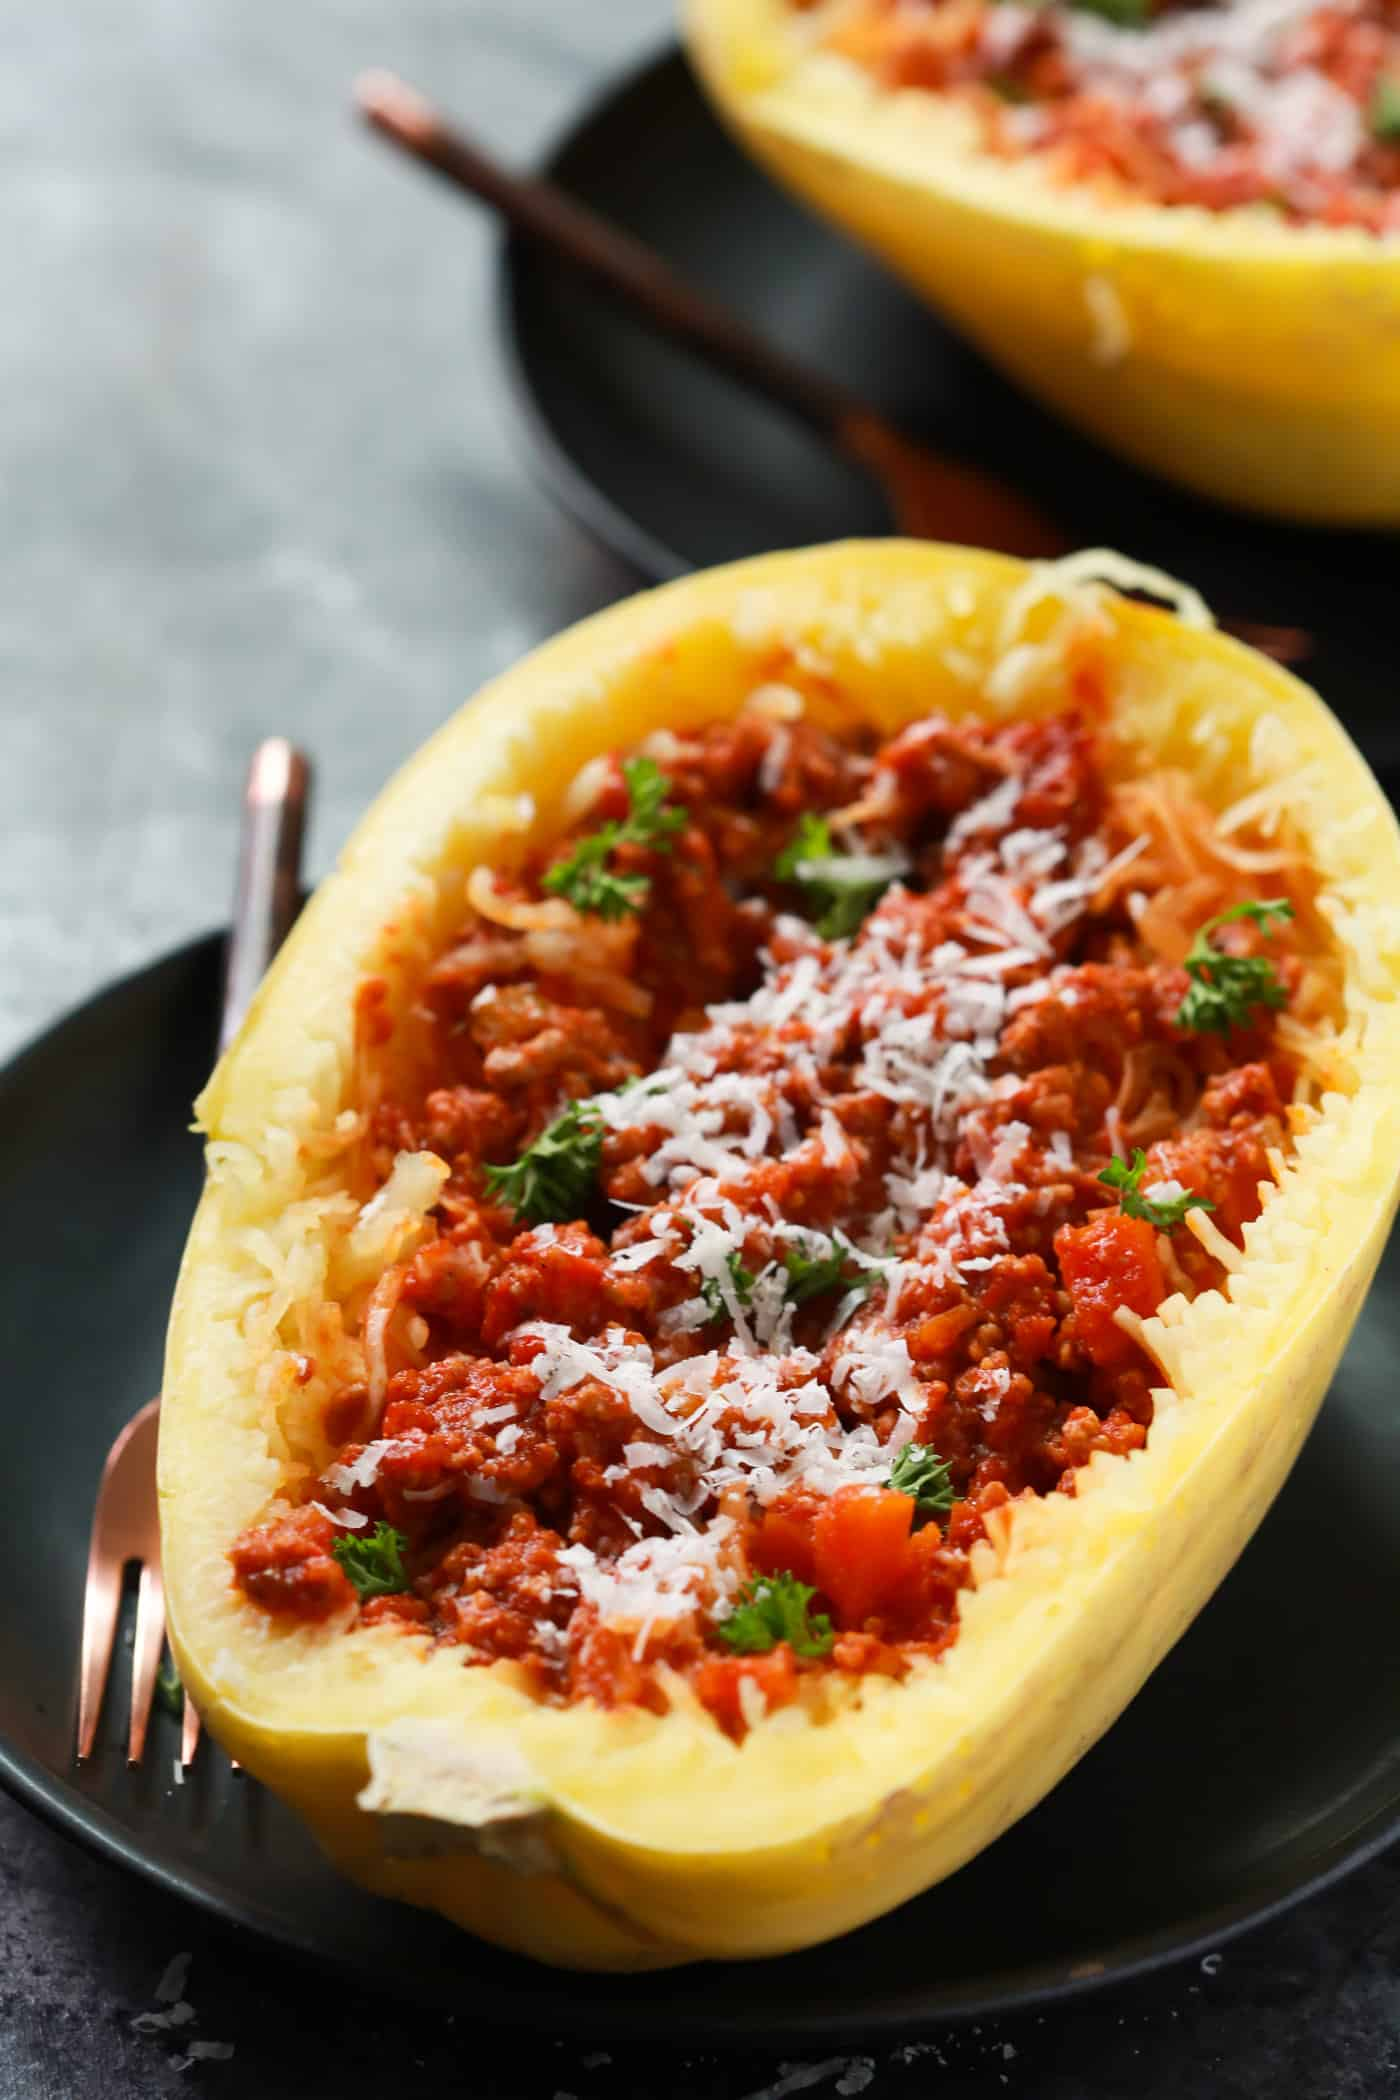 Comforting Food doesn't need to be full of carbs, right? I can prove what I'm saying with this super delicious Easy Bolognese Stuffed Spaghetti Squash recipe. It's also gluten-free and paleo friendly. Enjoy!